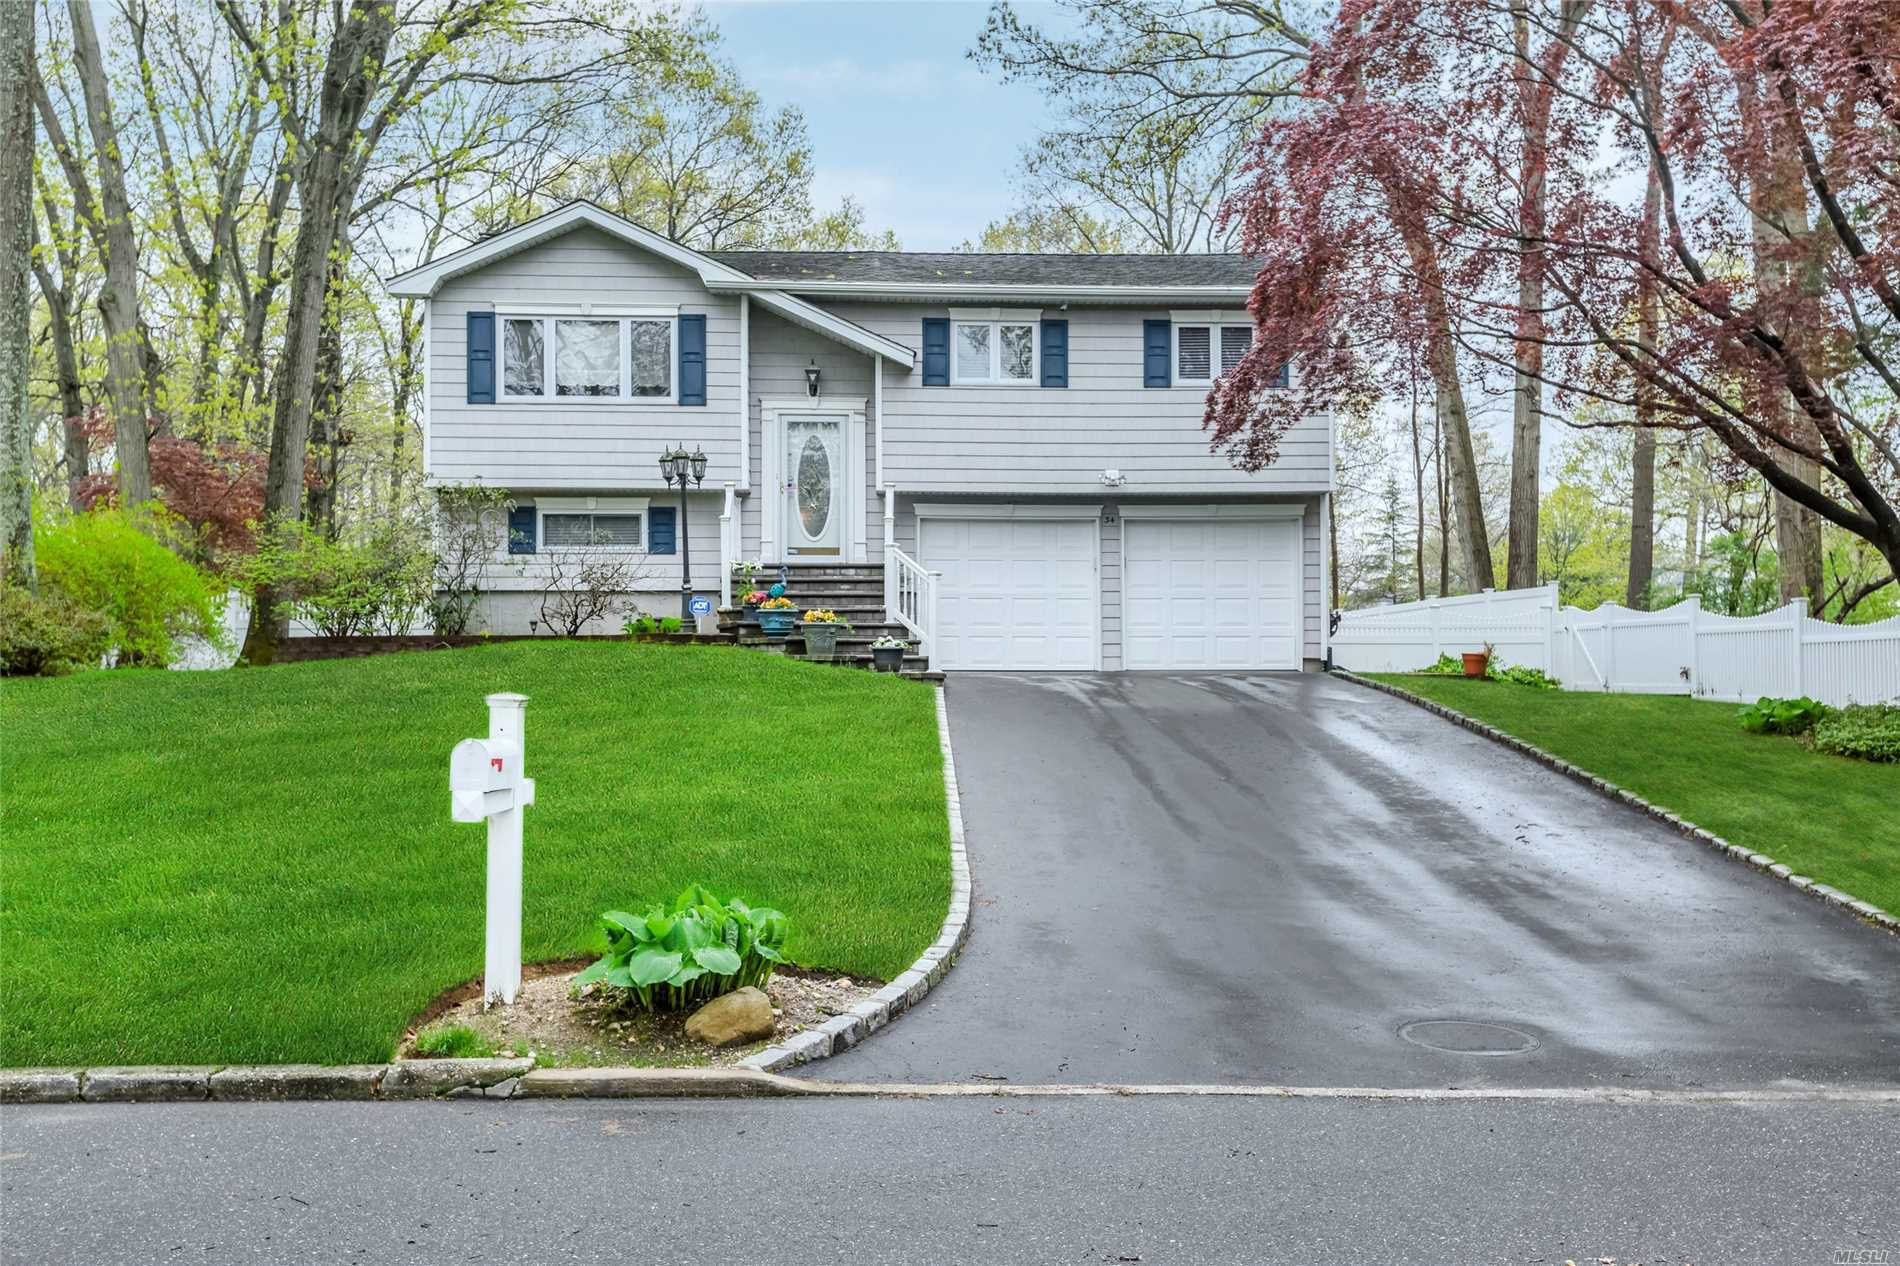 34 Ronde Dr - Commack, New York